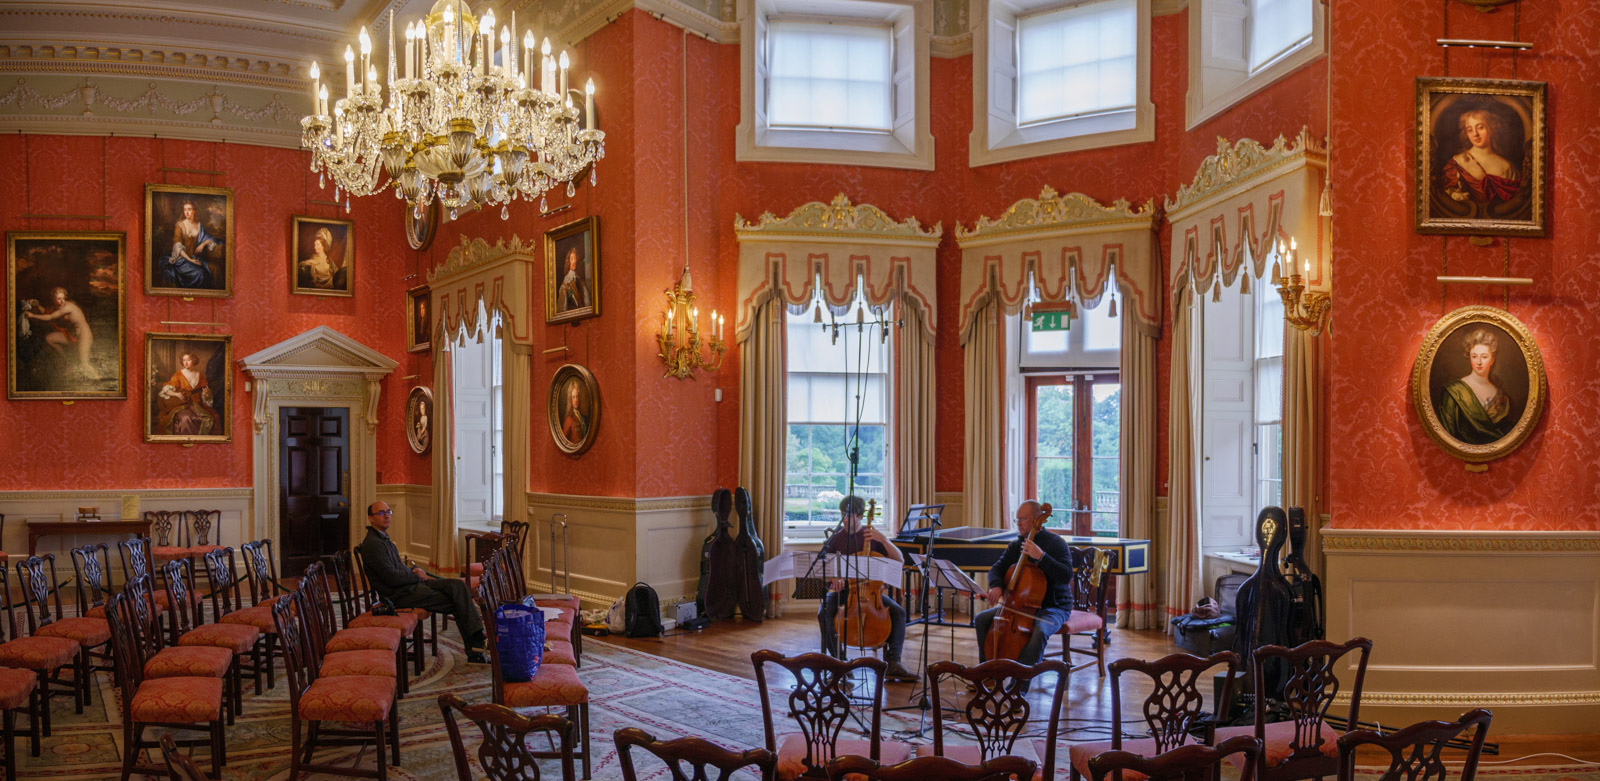 Shot of Henrik and Jon playing, surrounded by ornate decoration and paintings in Weston Park